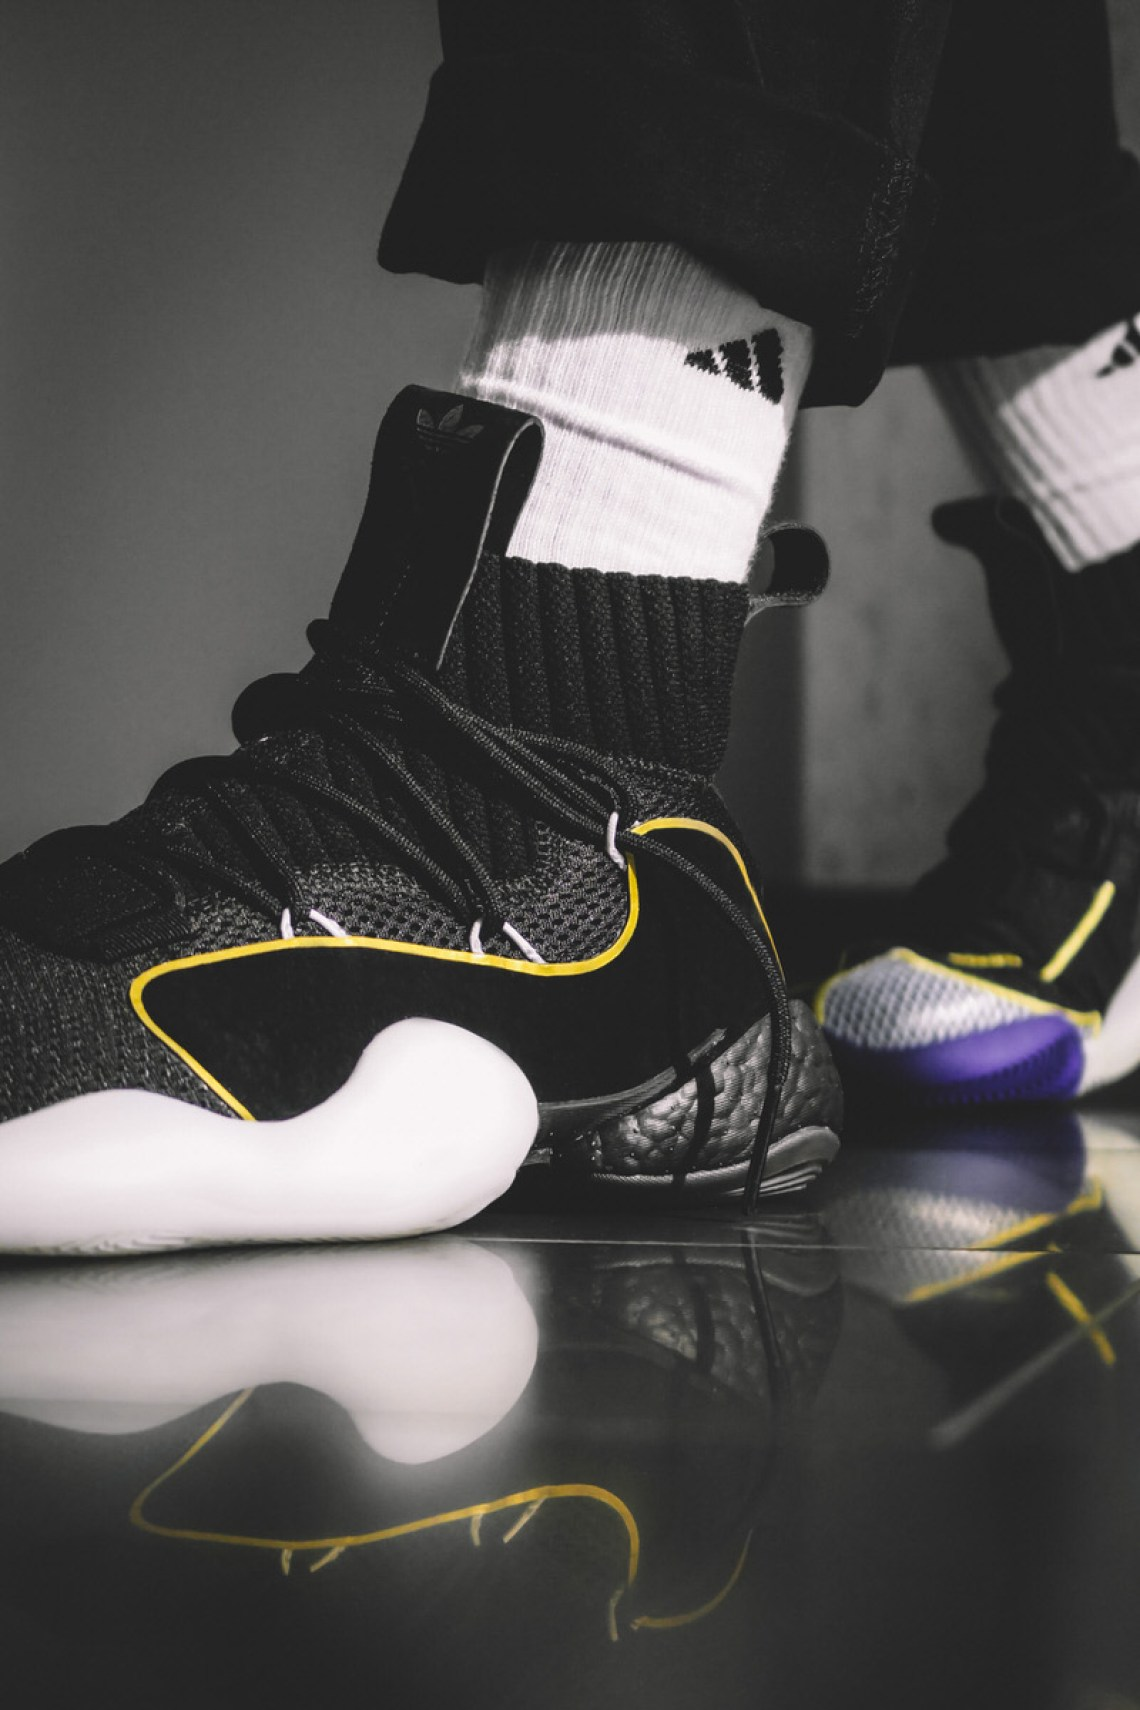 f8f0fe114 The Adidas Crazy BYW X Delivers Style   Performance For A Modern ...